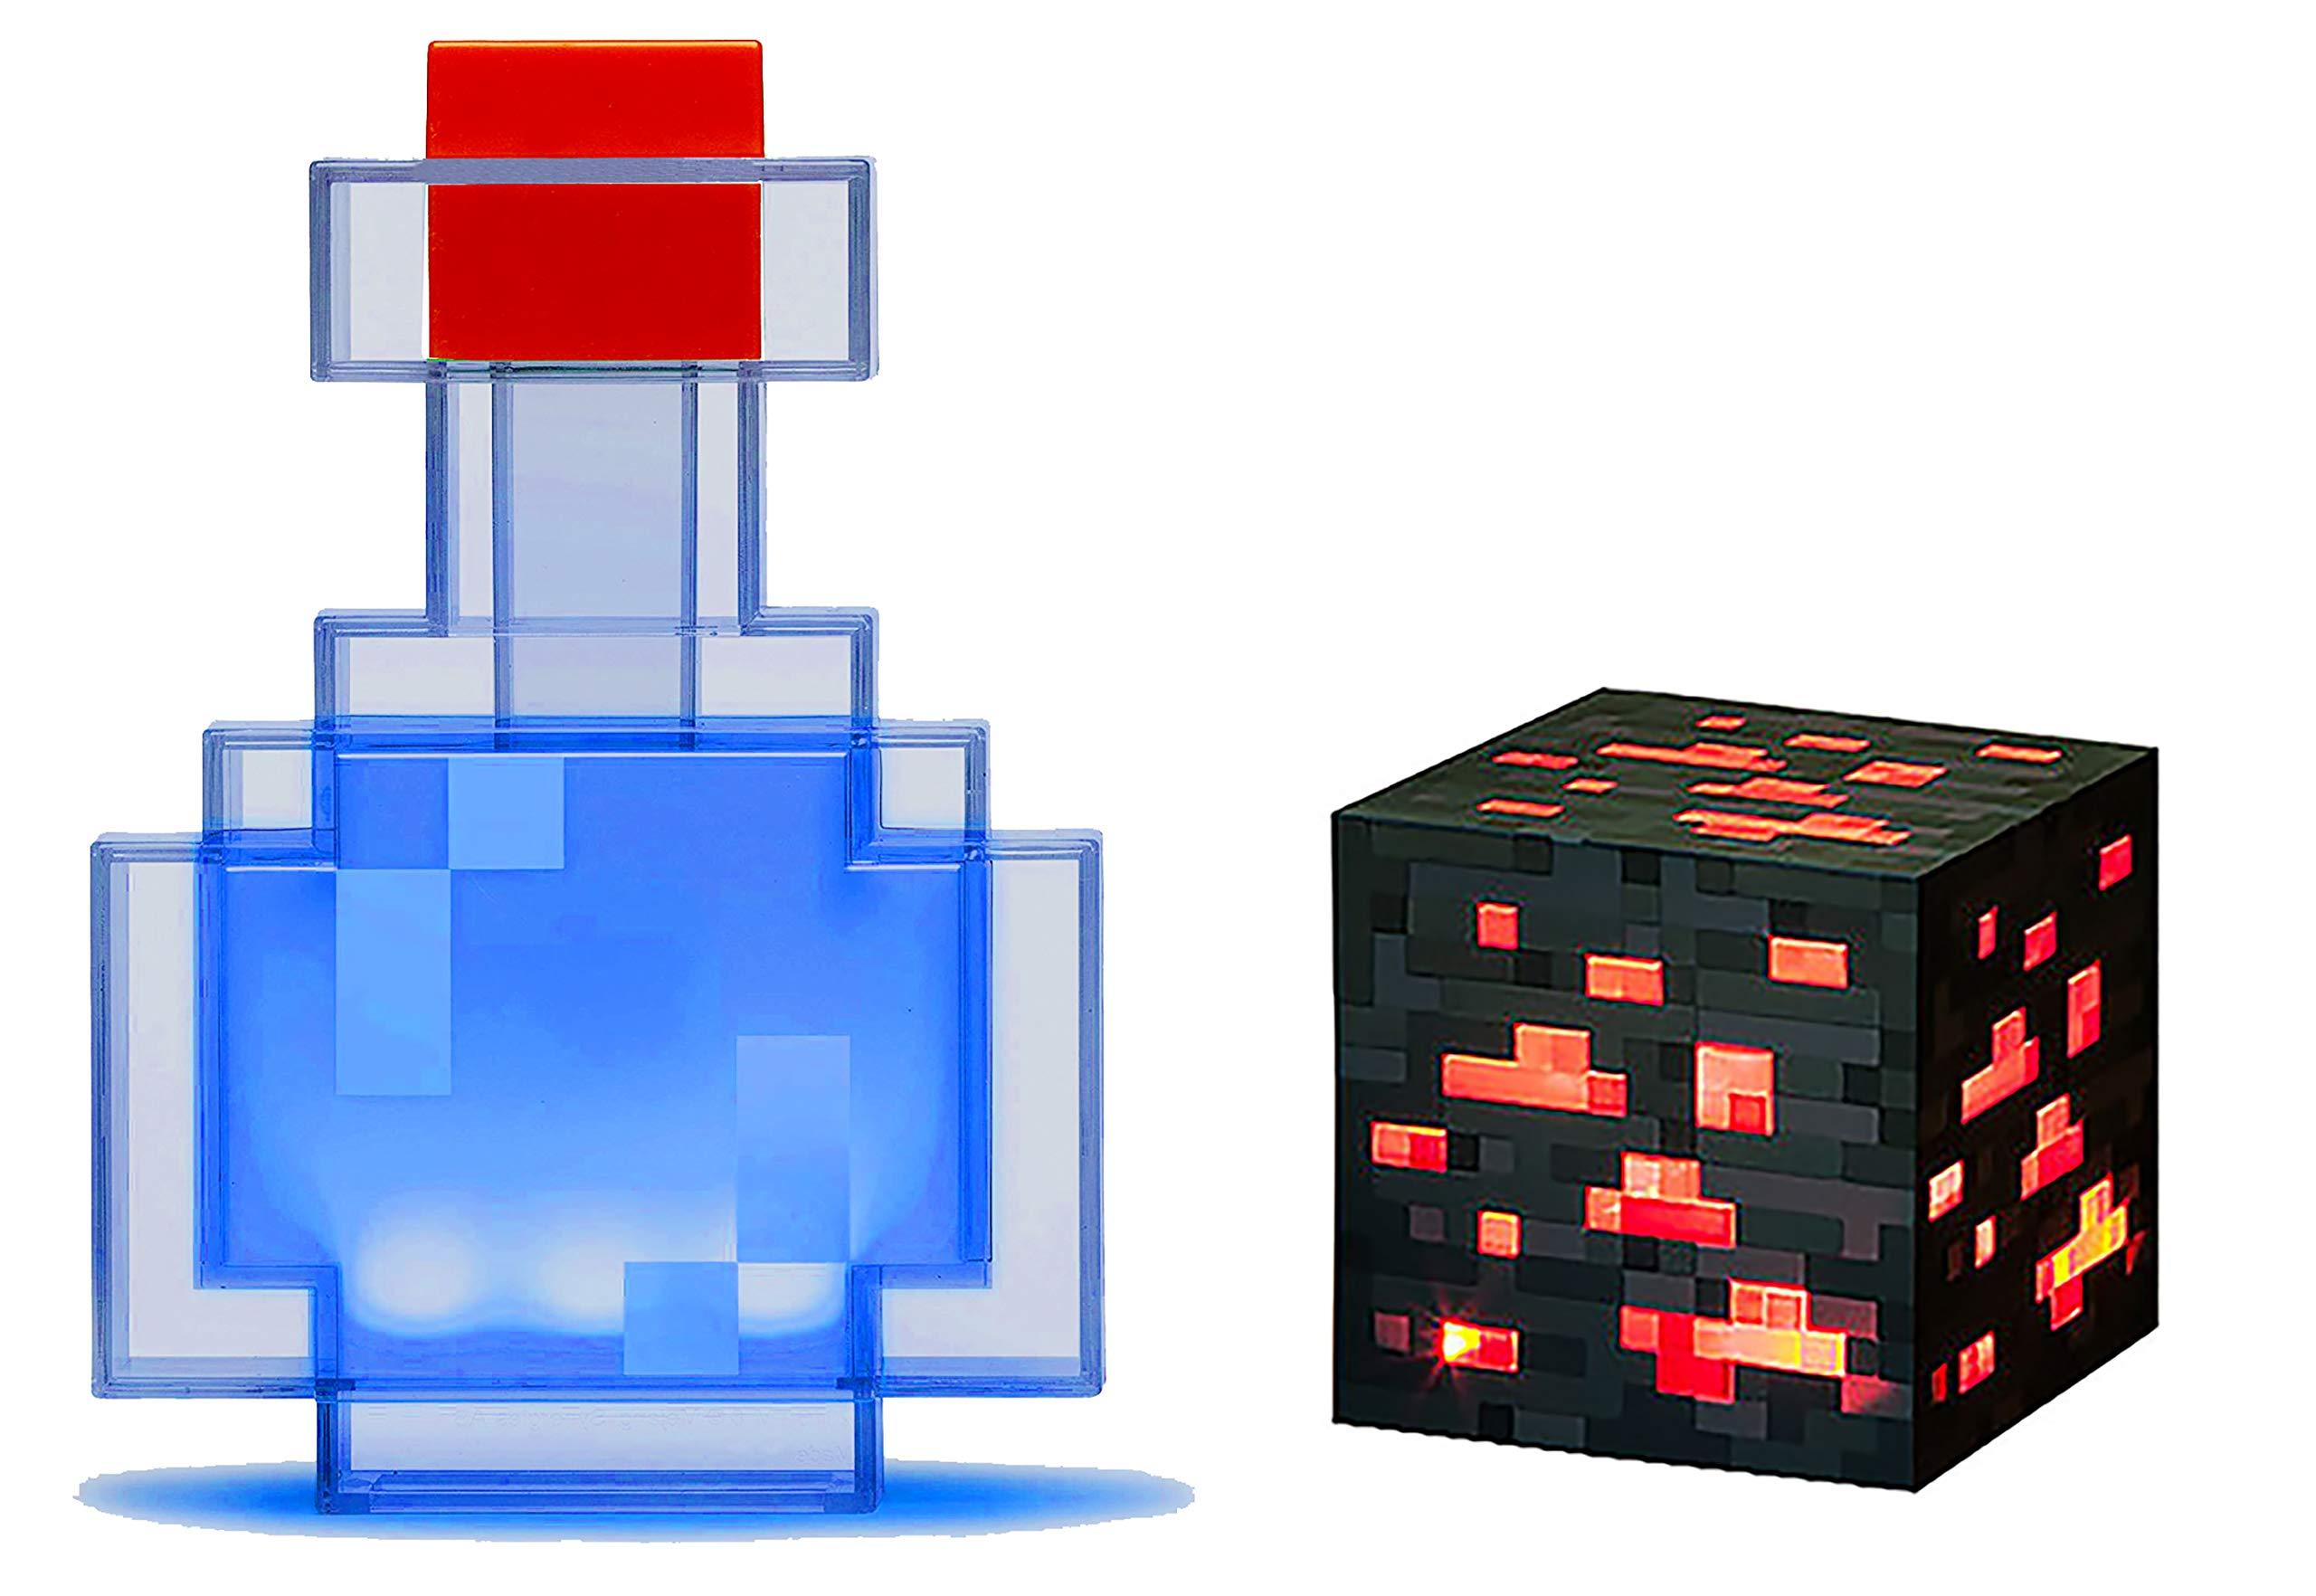 TG ThinkGeek Minecraft Color Changing Potion Bottle - Lights Up and Switches Between 8 Different Colors and Redstone Ore - Officially Licensed Minecraft Toys